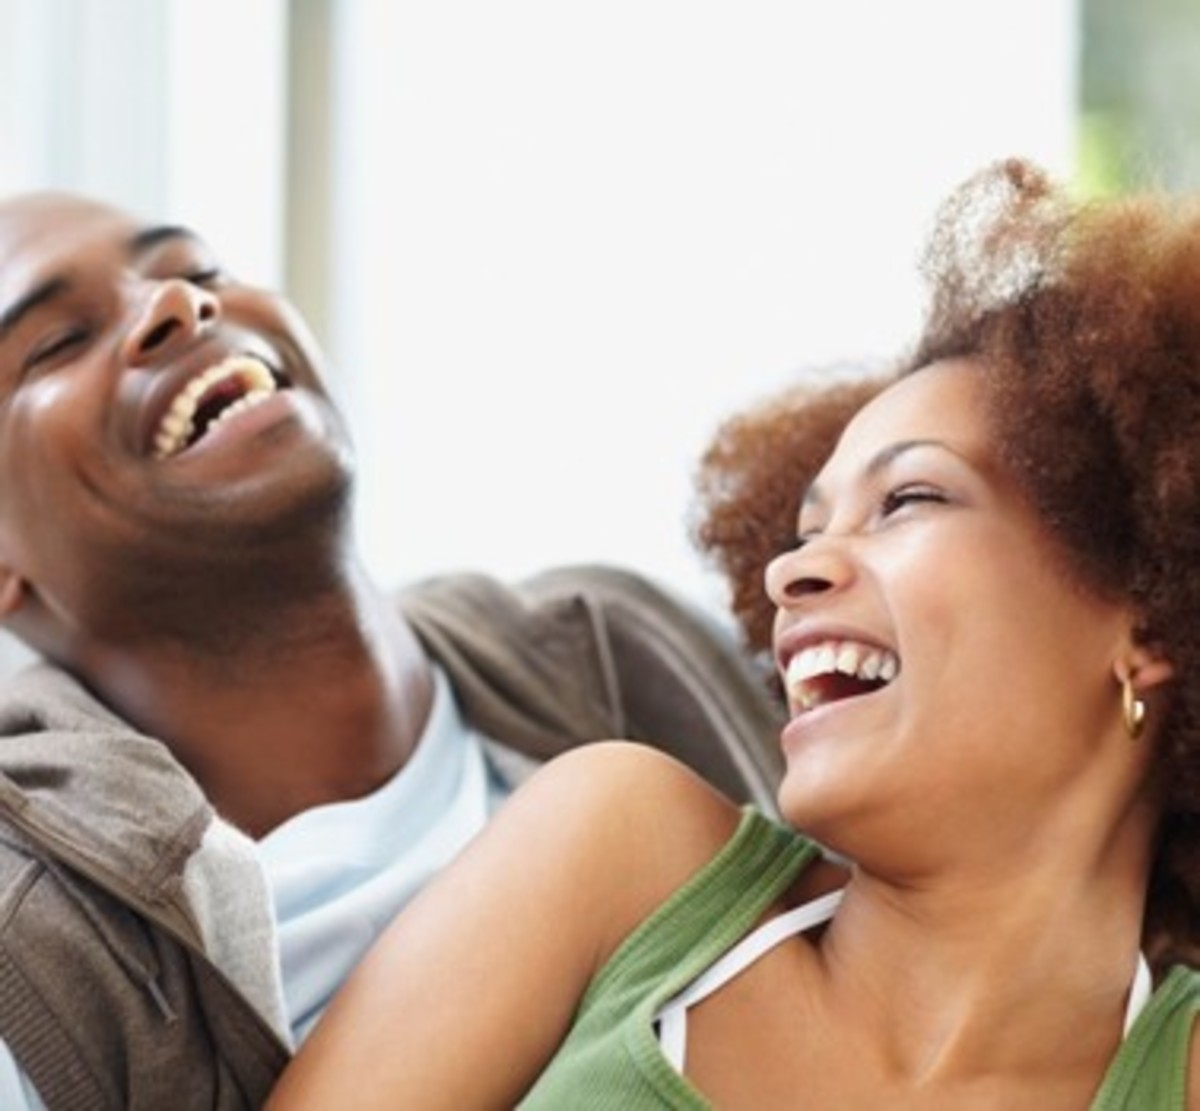 Love is laughter